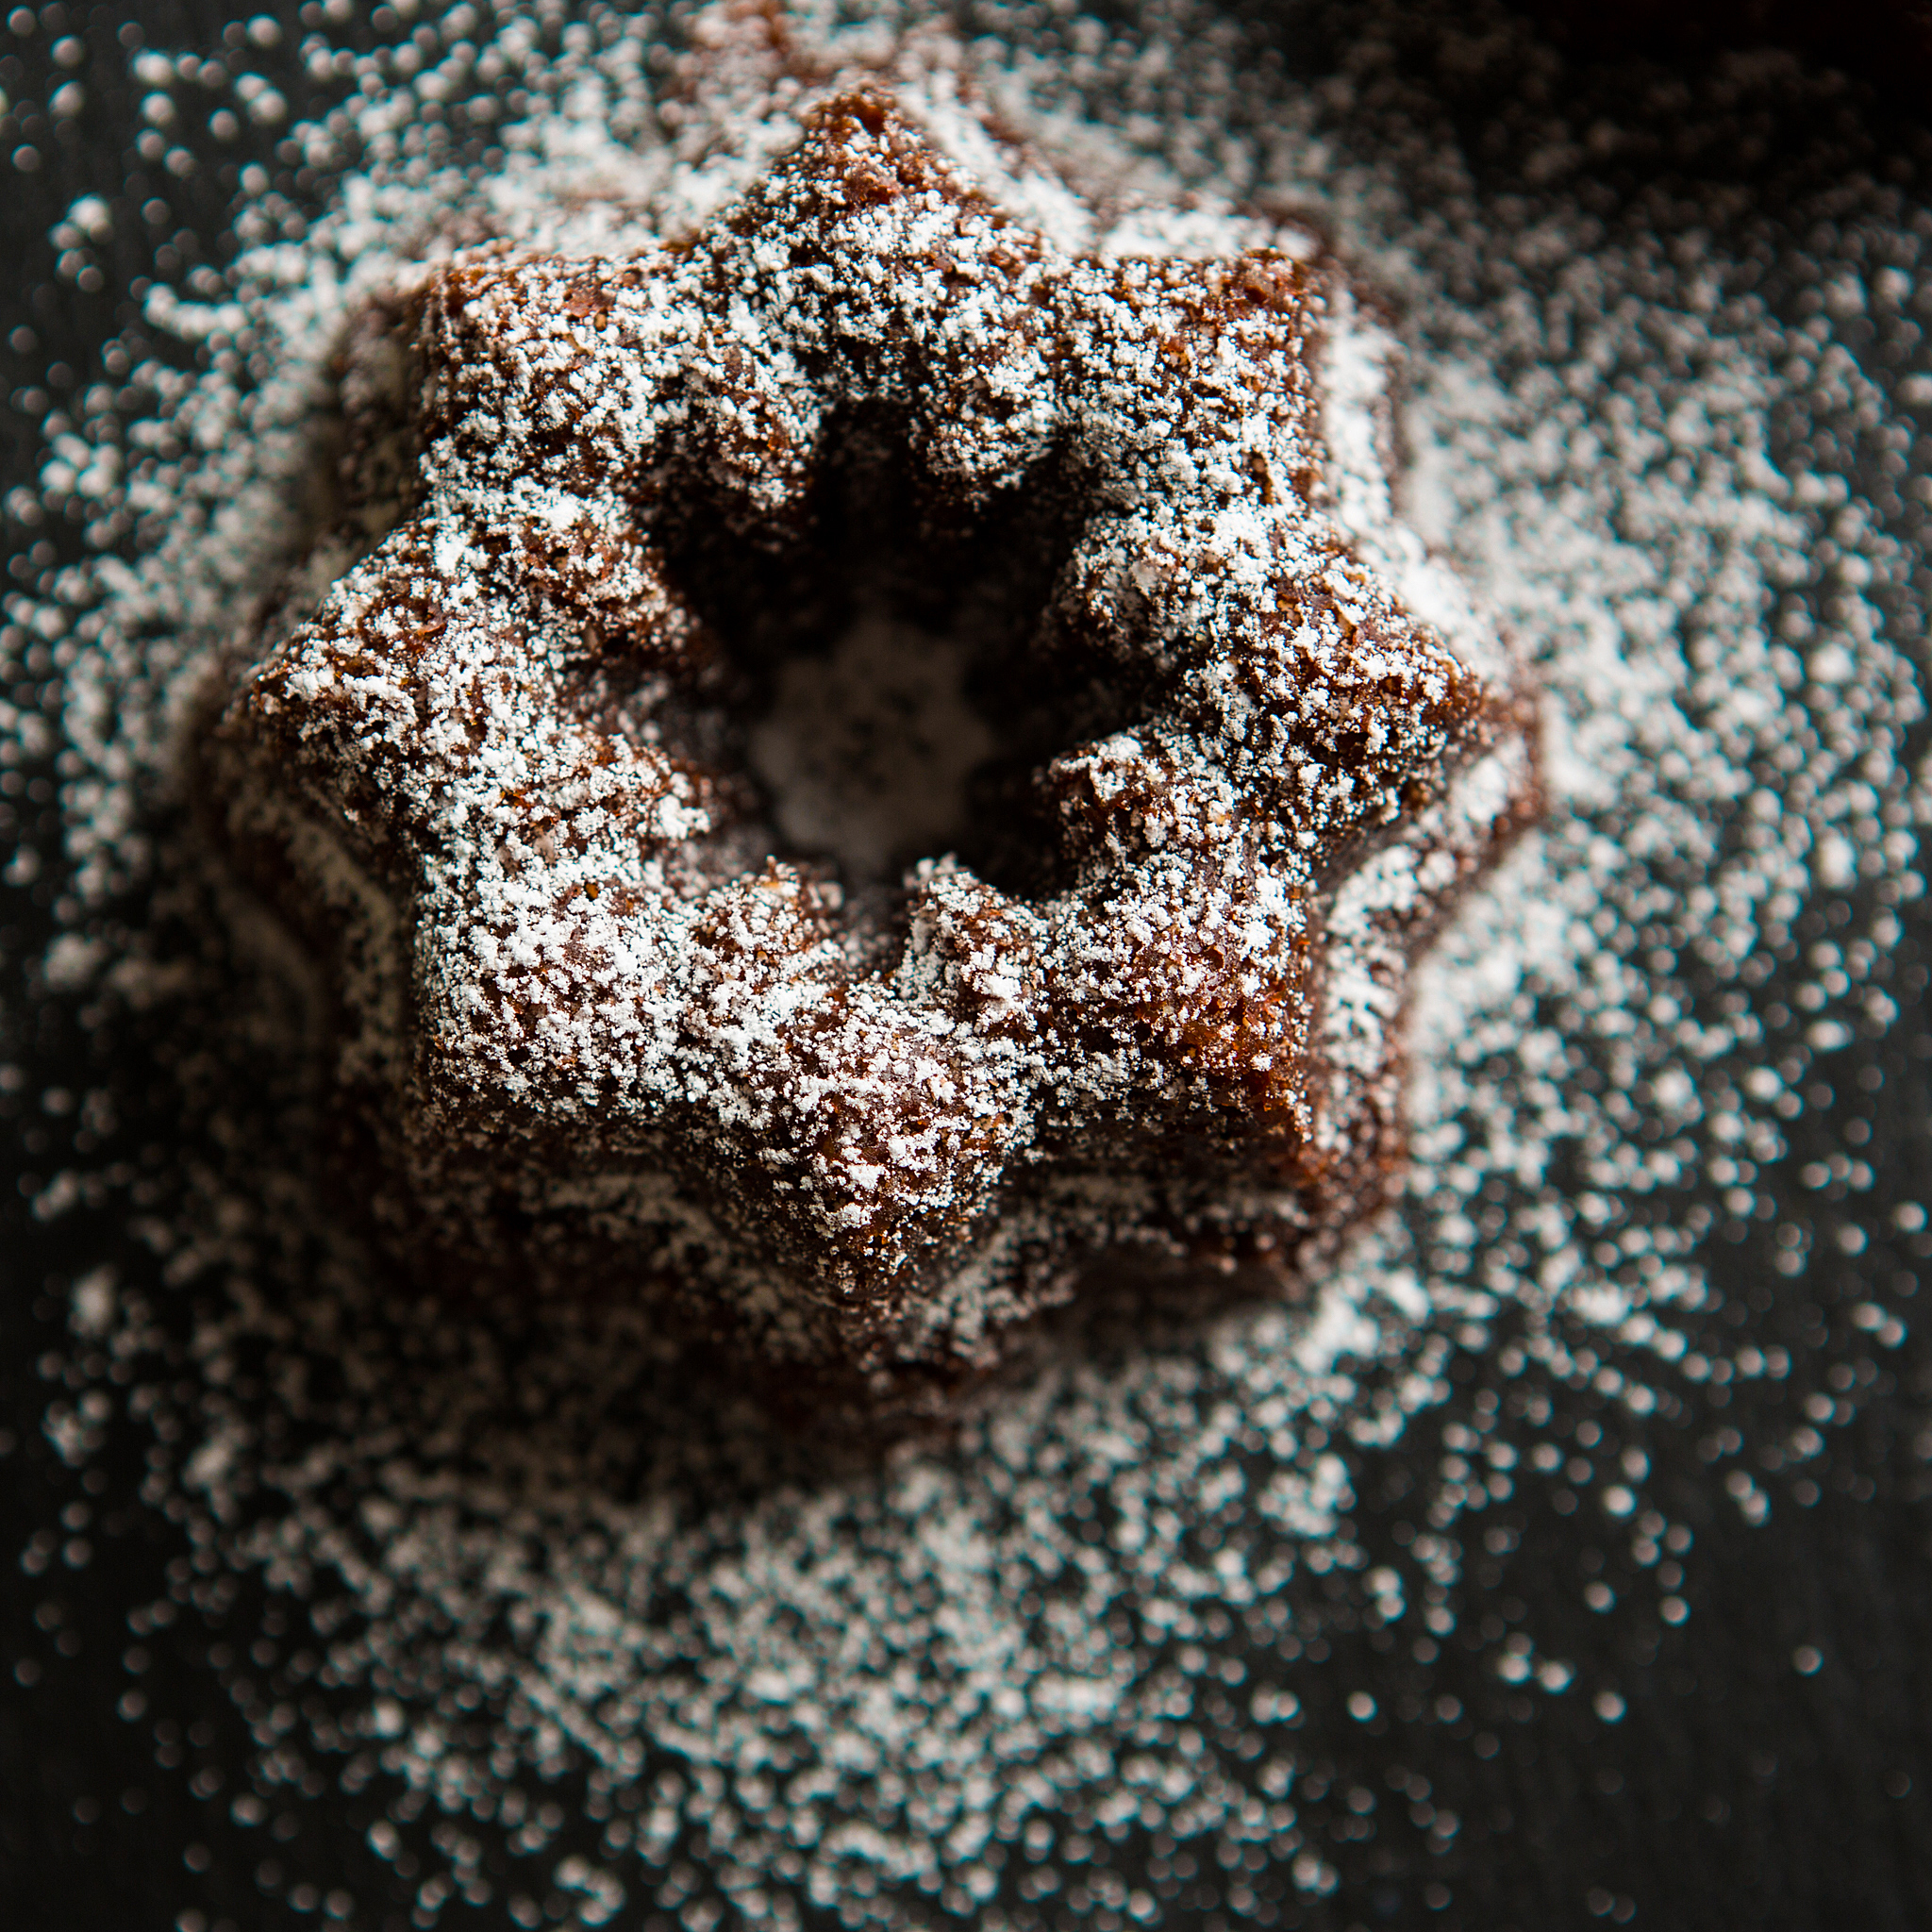 Powdered sugar on a brown cake